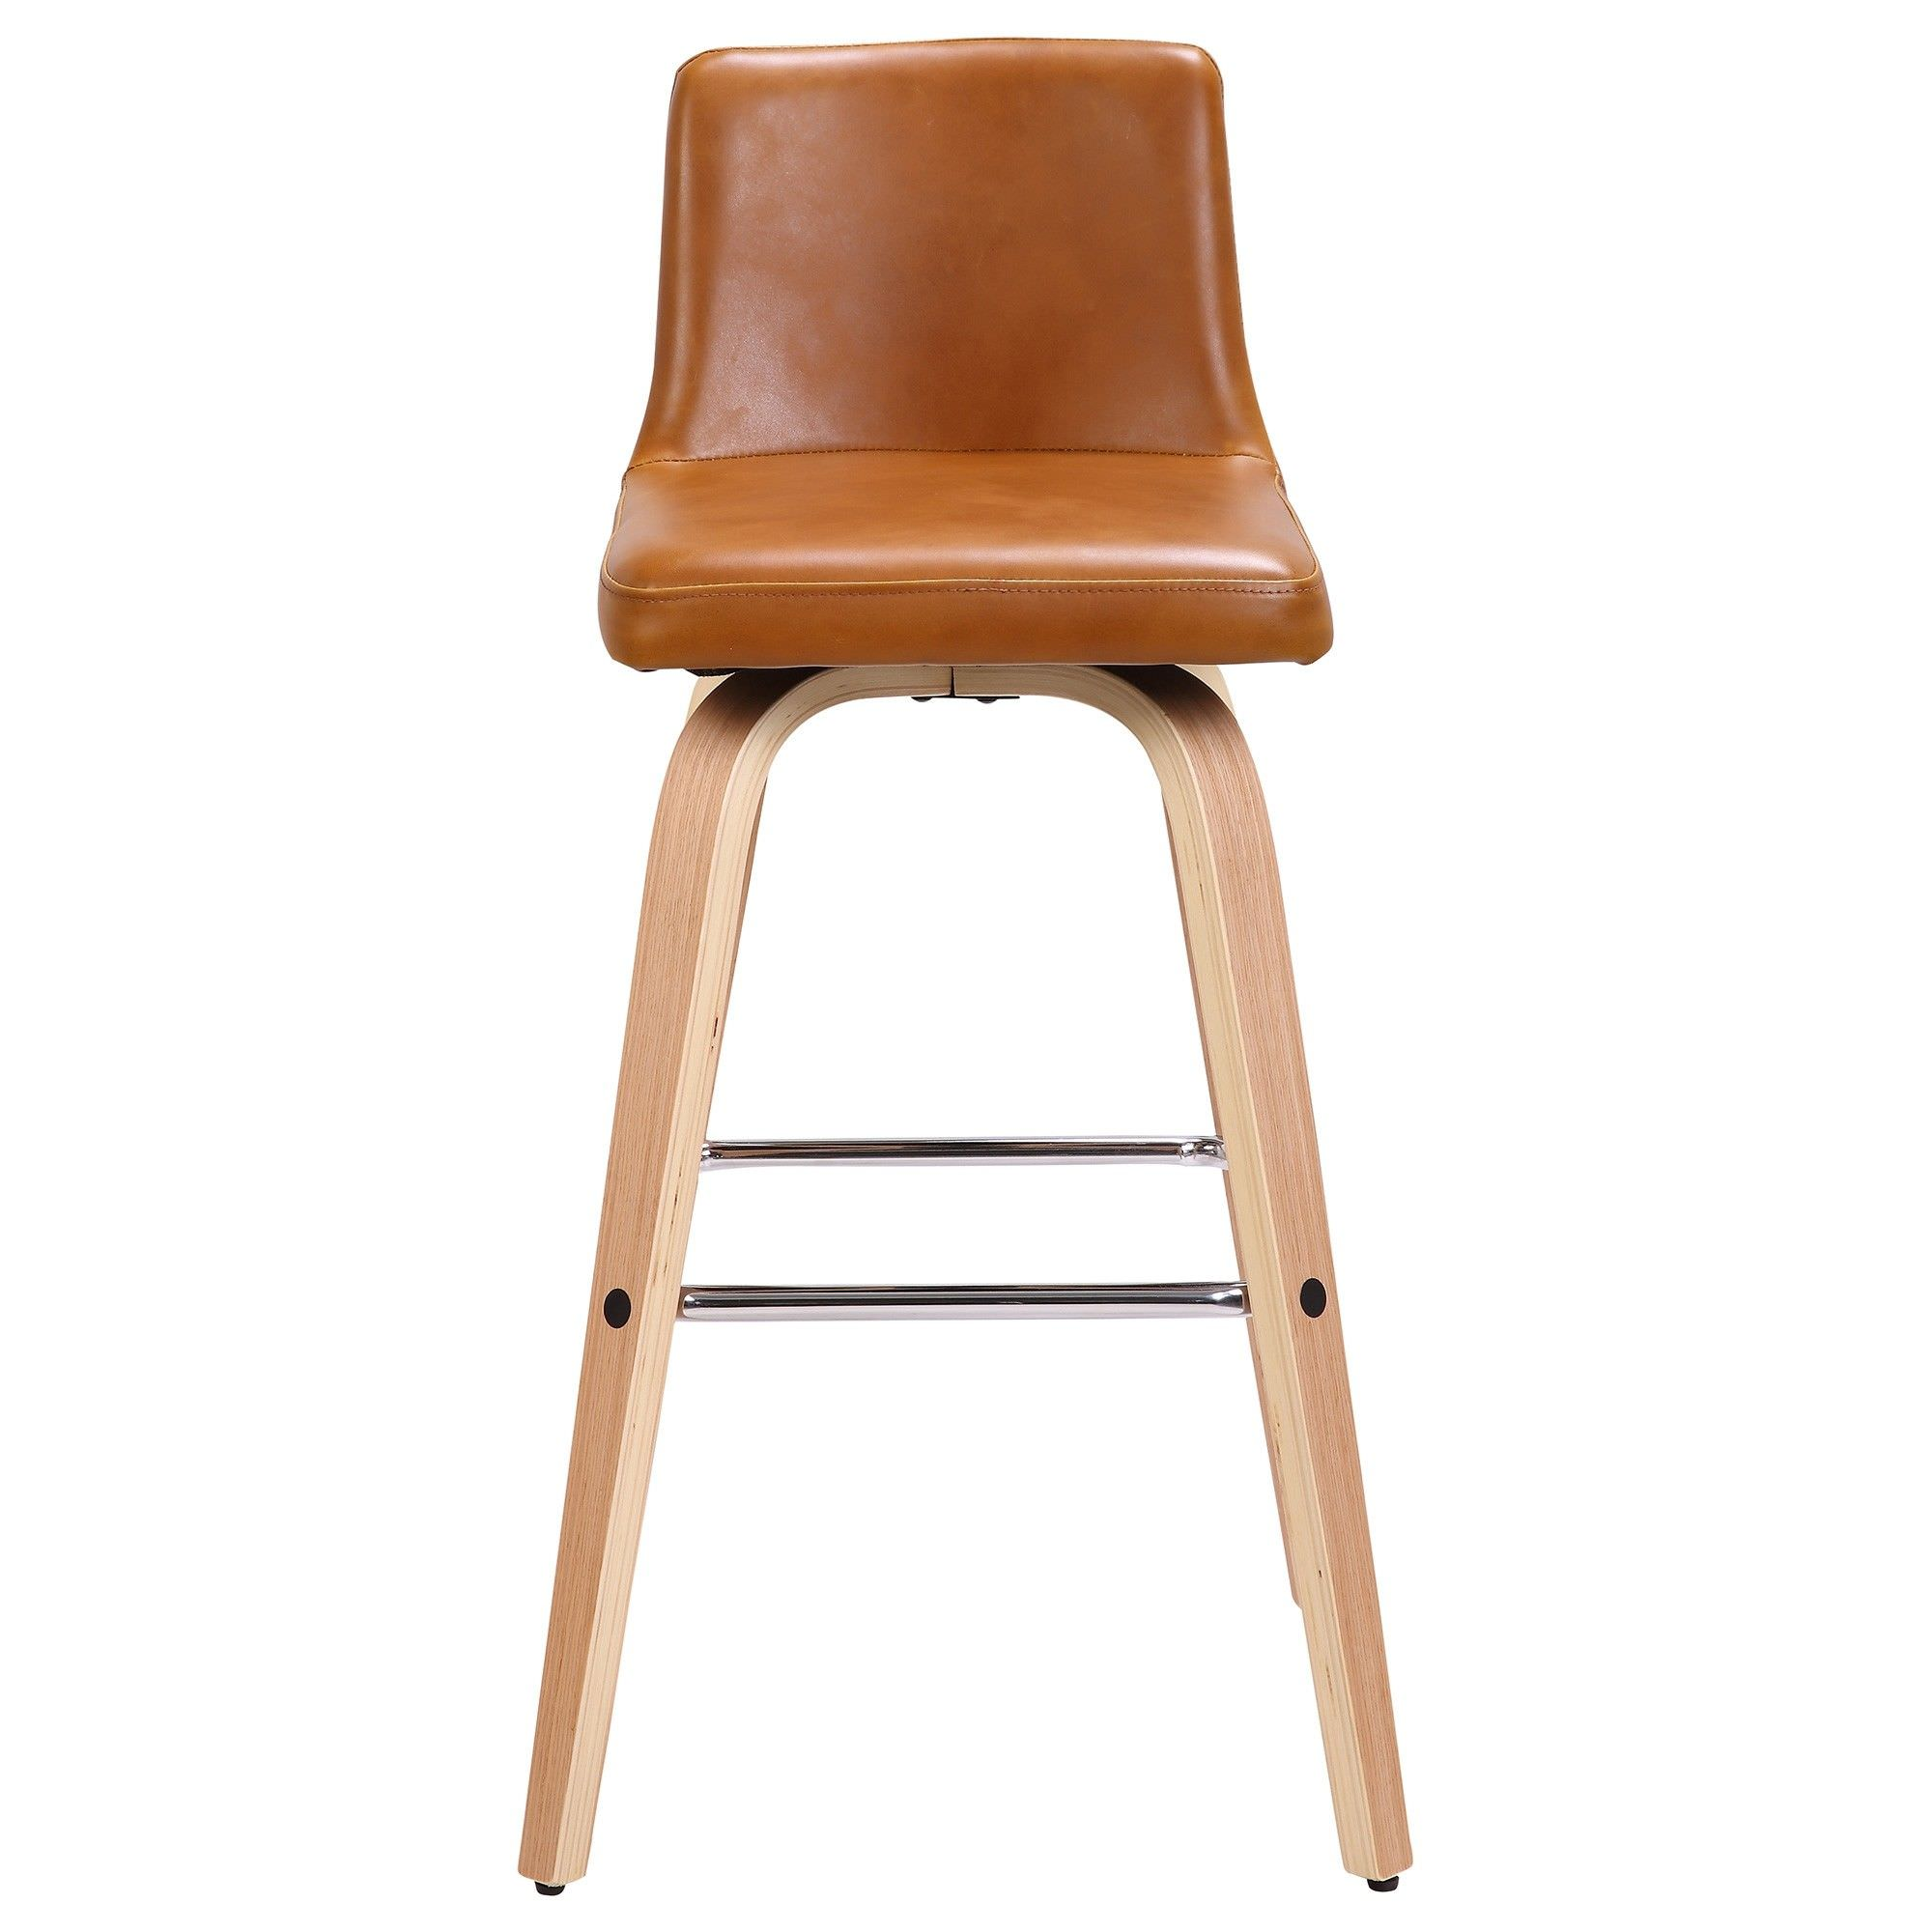 Matera Commercial Grade Bentwood Swivel Bar Chair, Faux Leather Seat, Tan / Oak